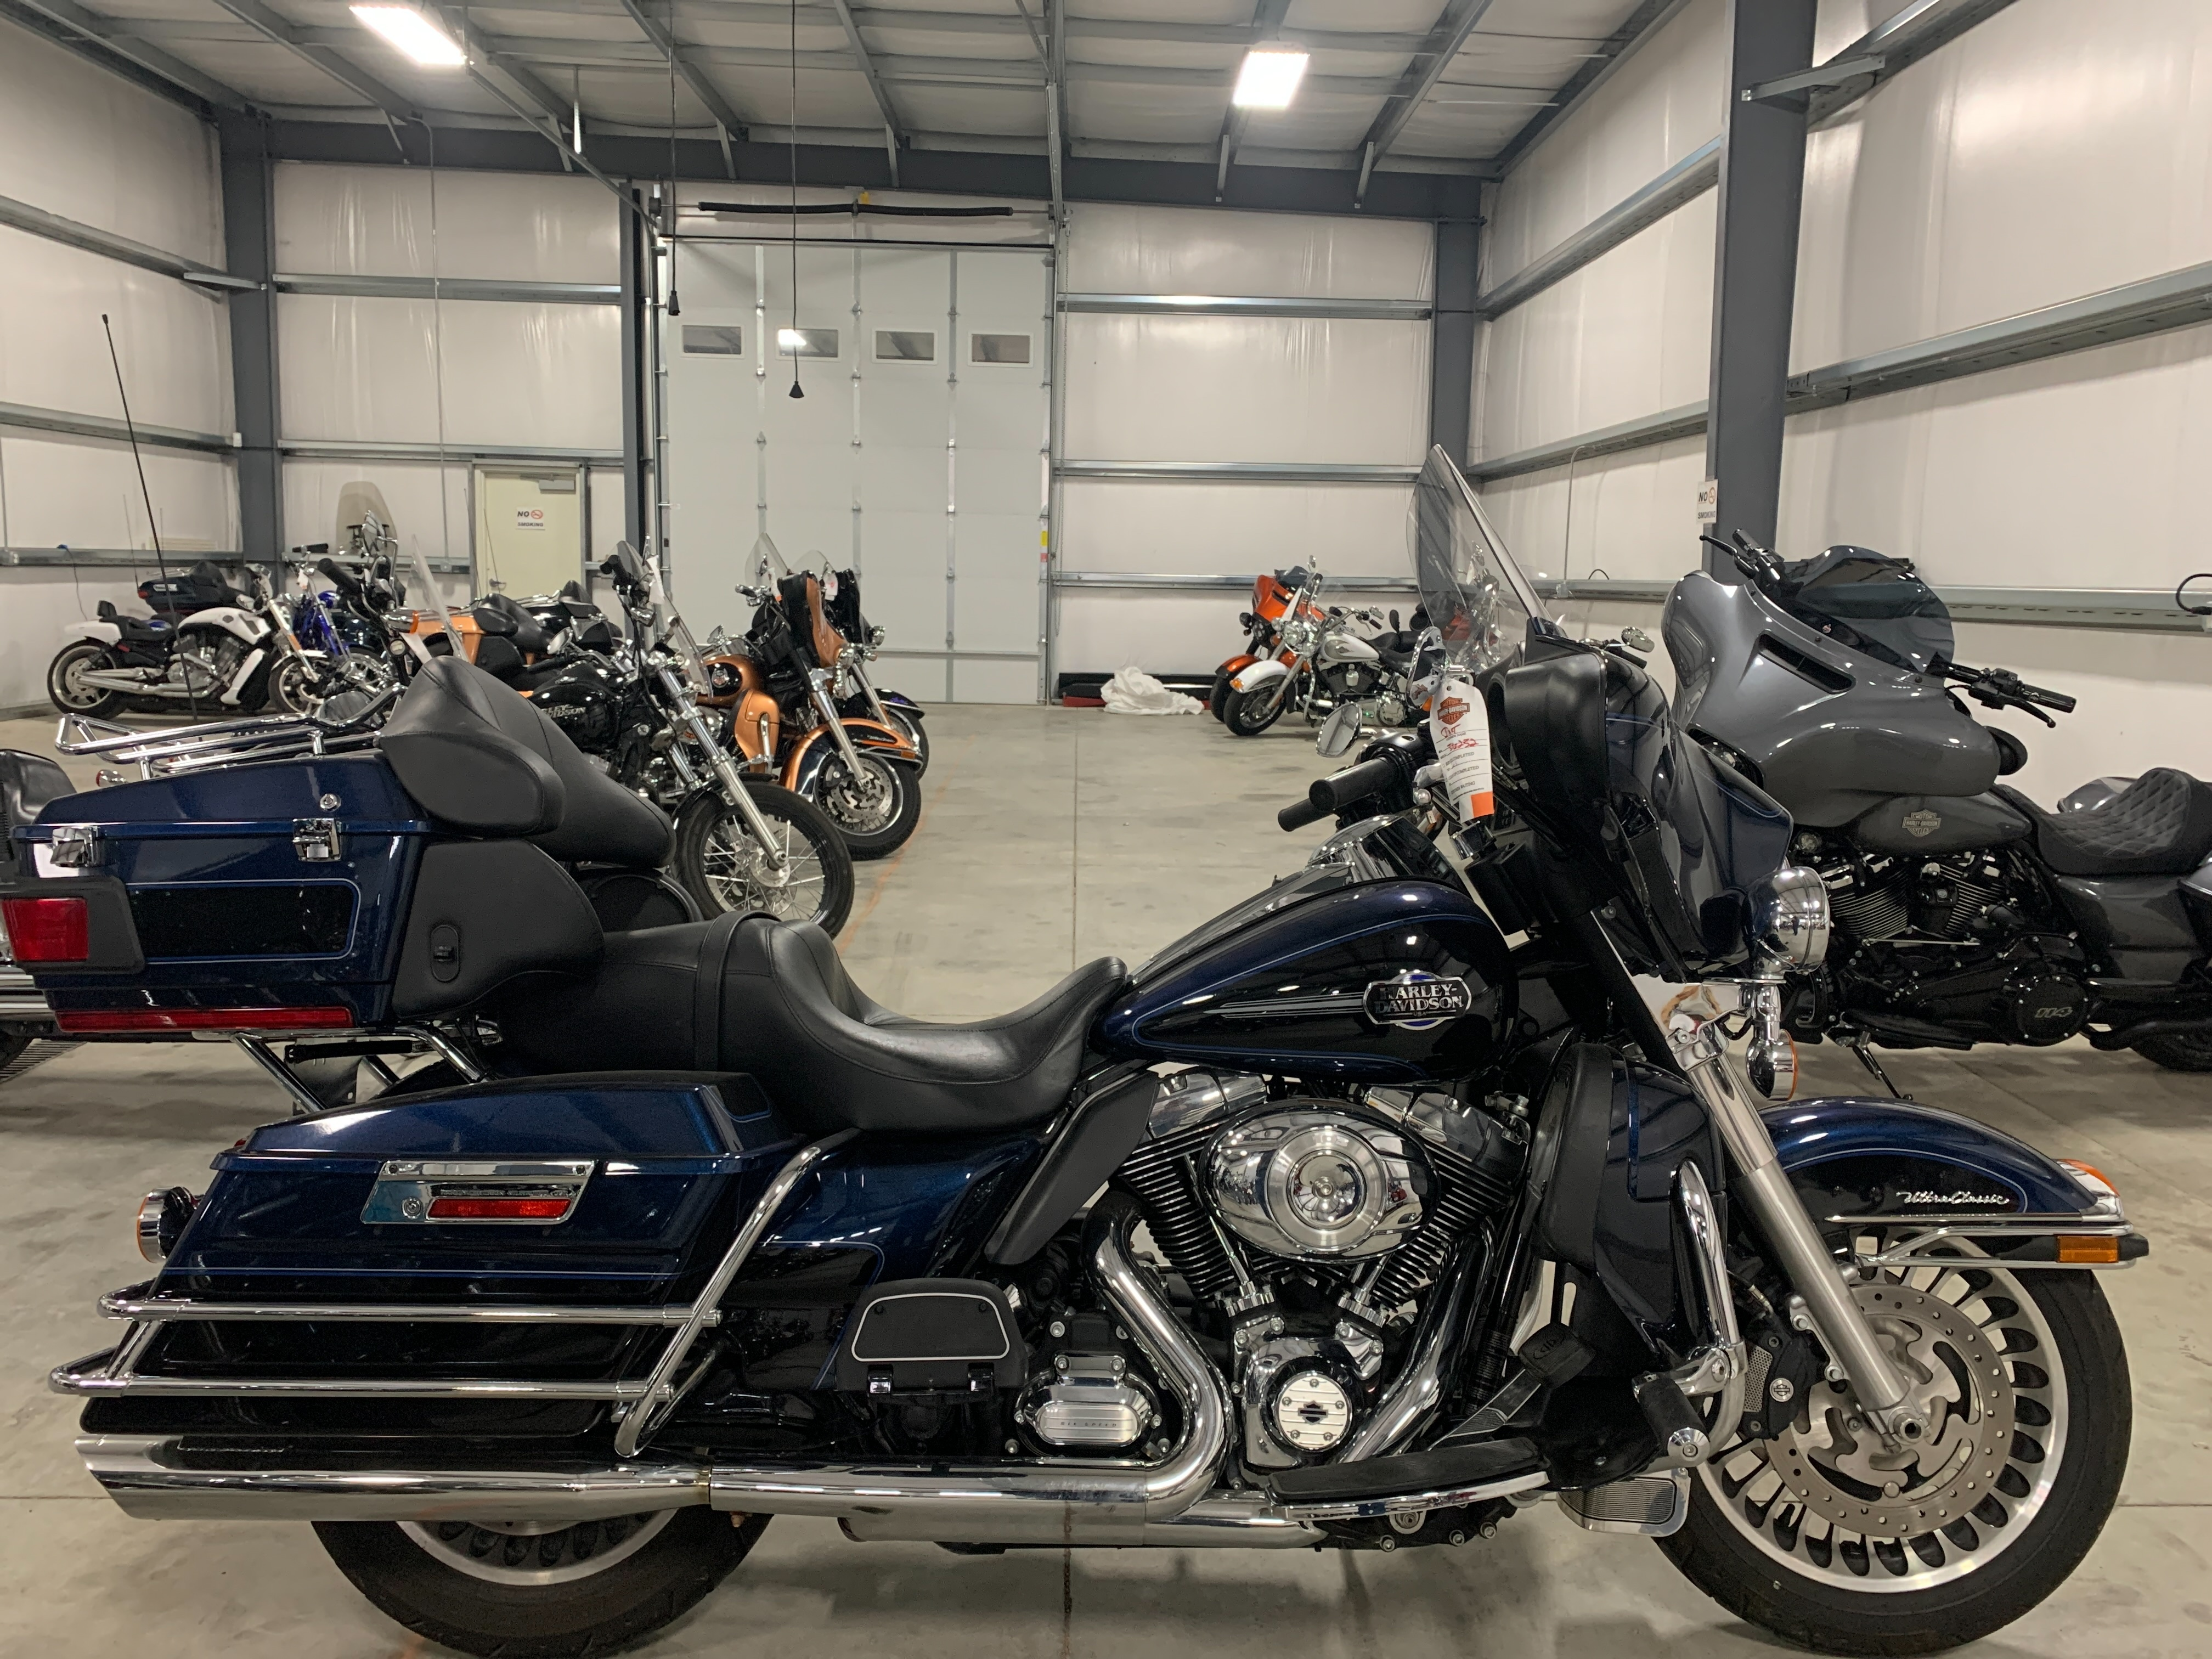 2012 Harley-Davidson Electra Glide Ultra Classic at Loess Hills Harley-Davidson